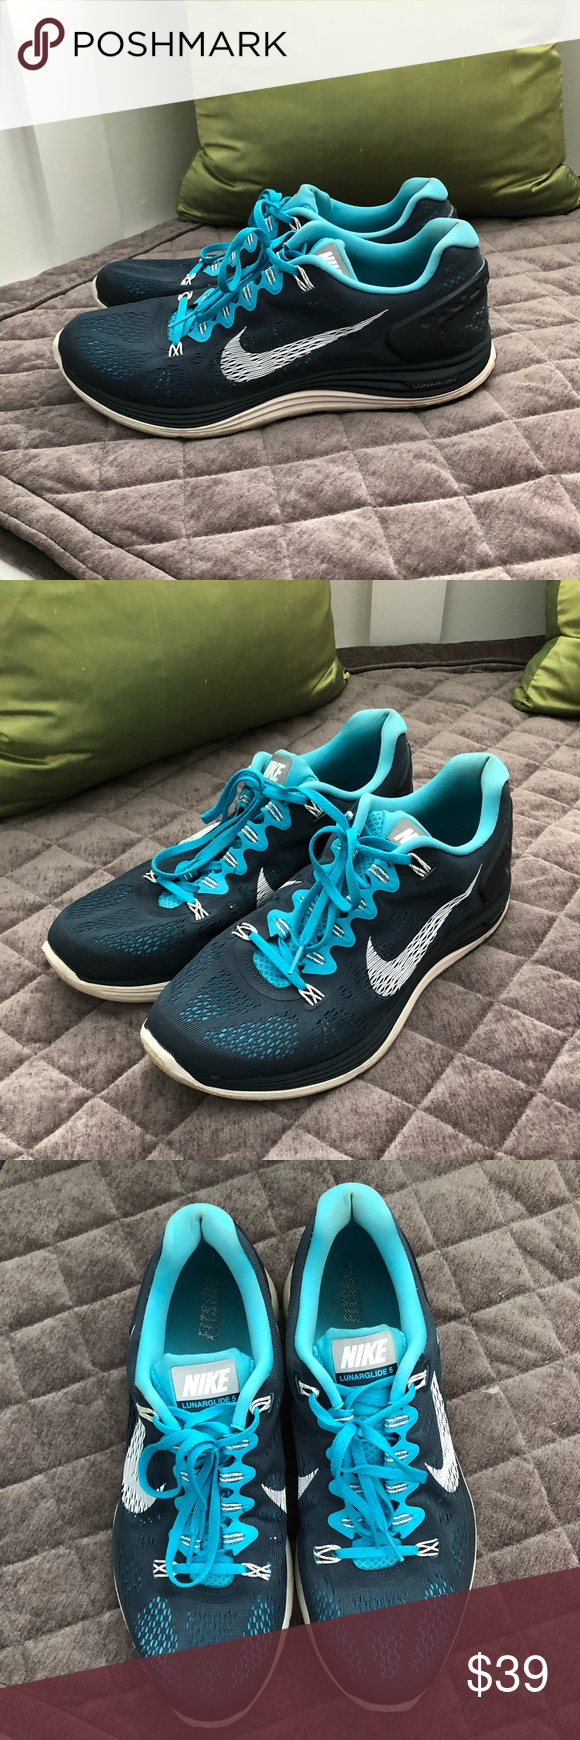 detailed look 68df2 65b47 Men s Nike Lunarglide 5 running shoes Men s Nike Lunarglide 5 running shoes.  Dark blue bright blue combo. Worn but still in good condition.